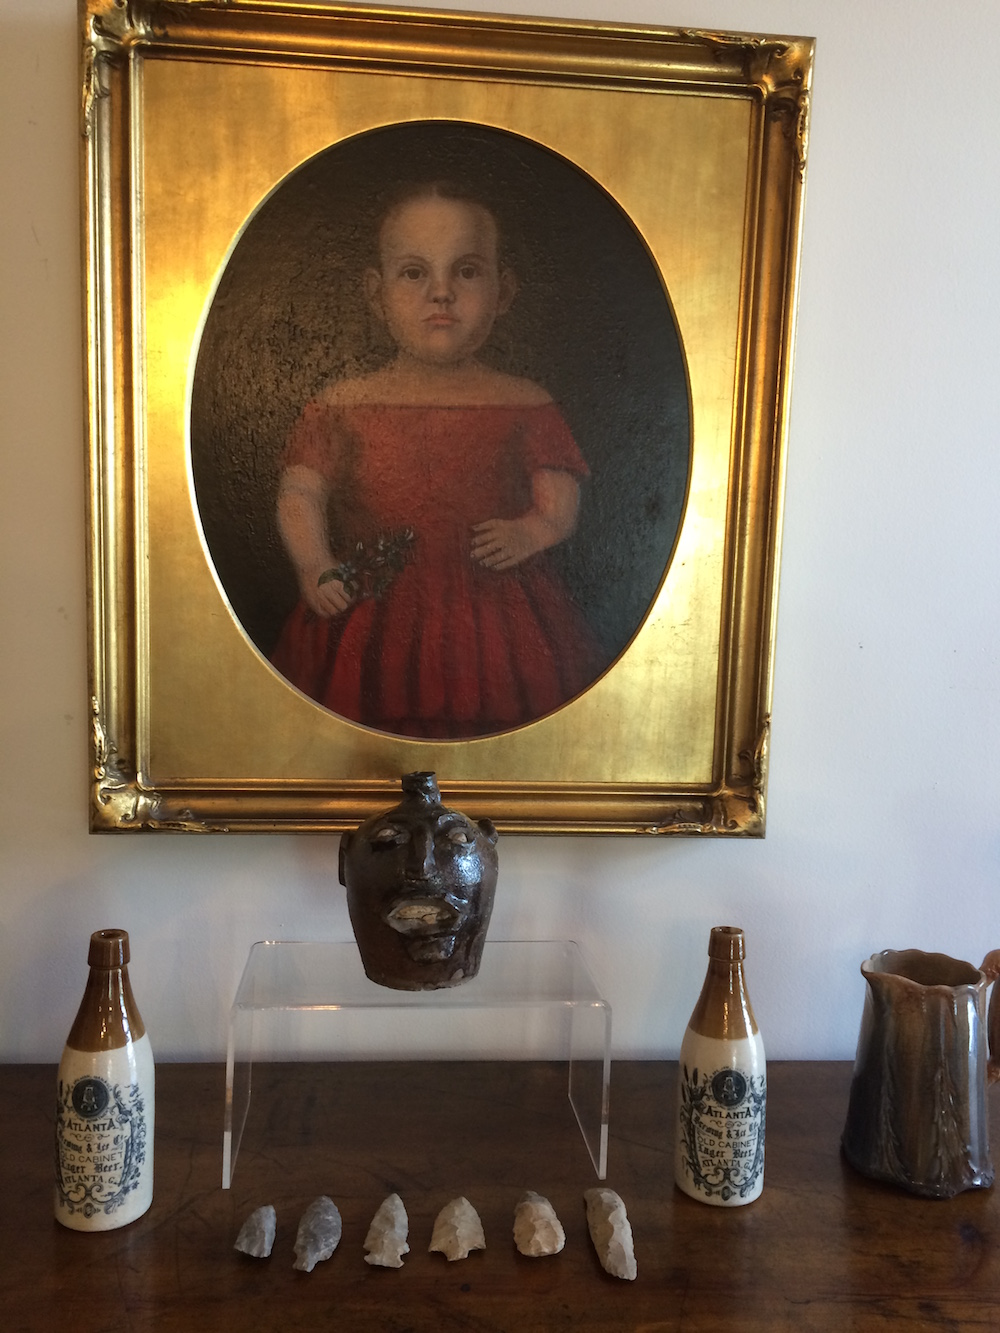 Arrowheads and antique bottles